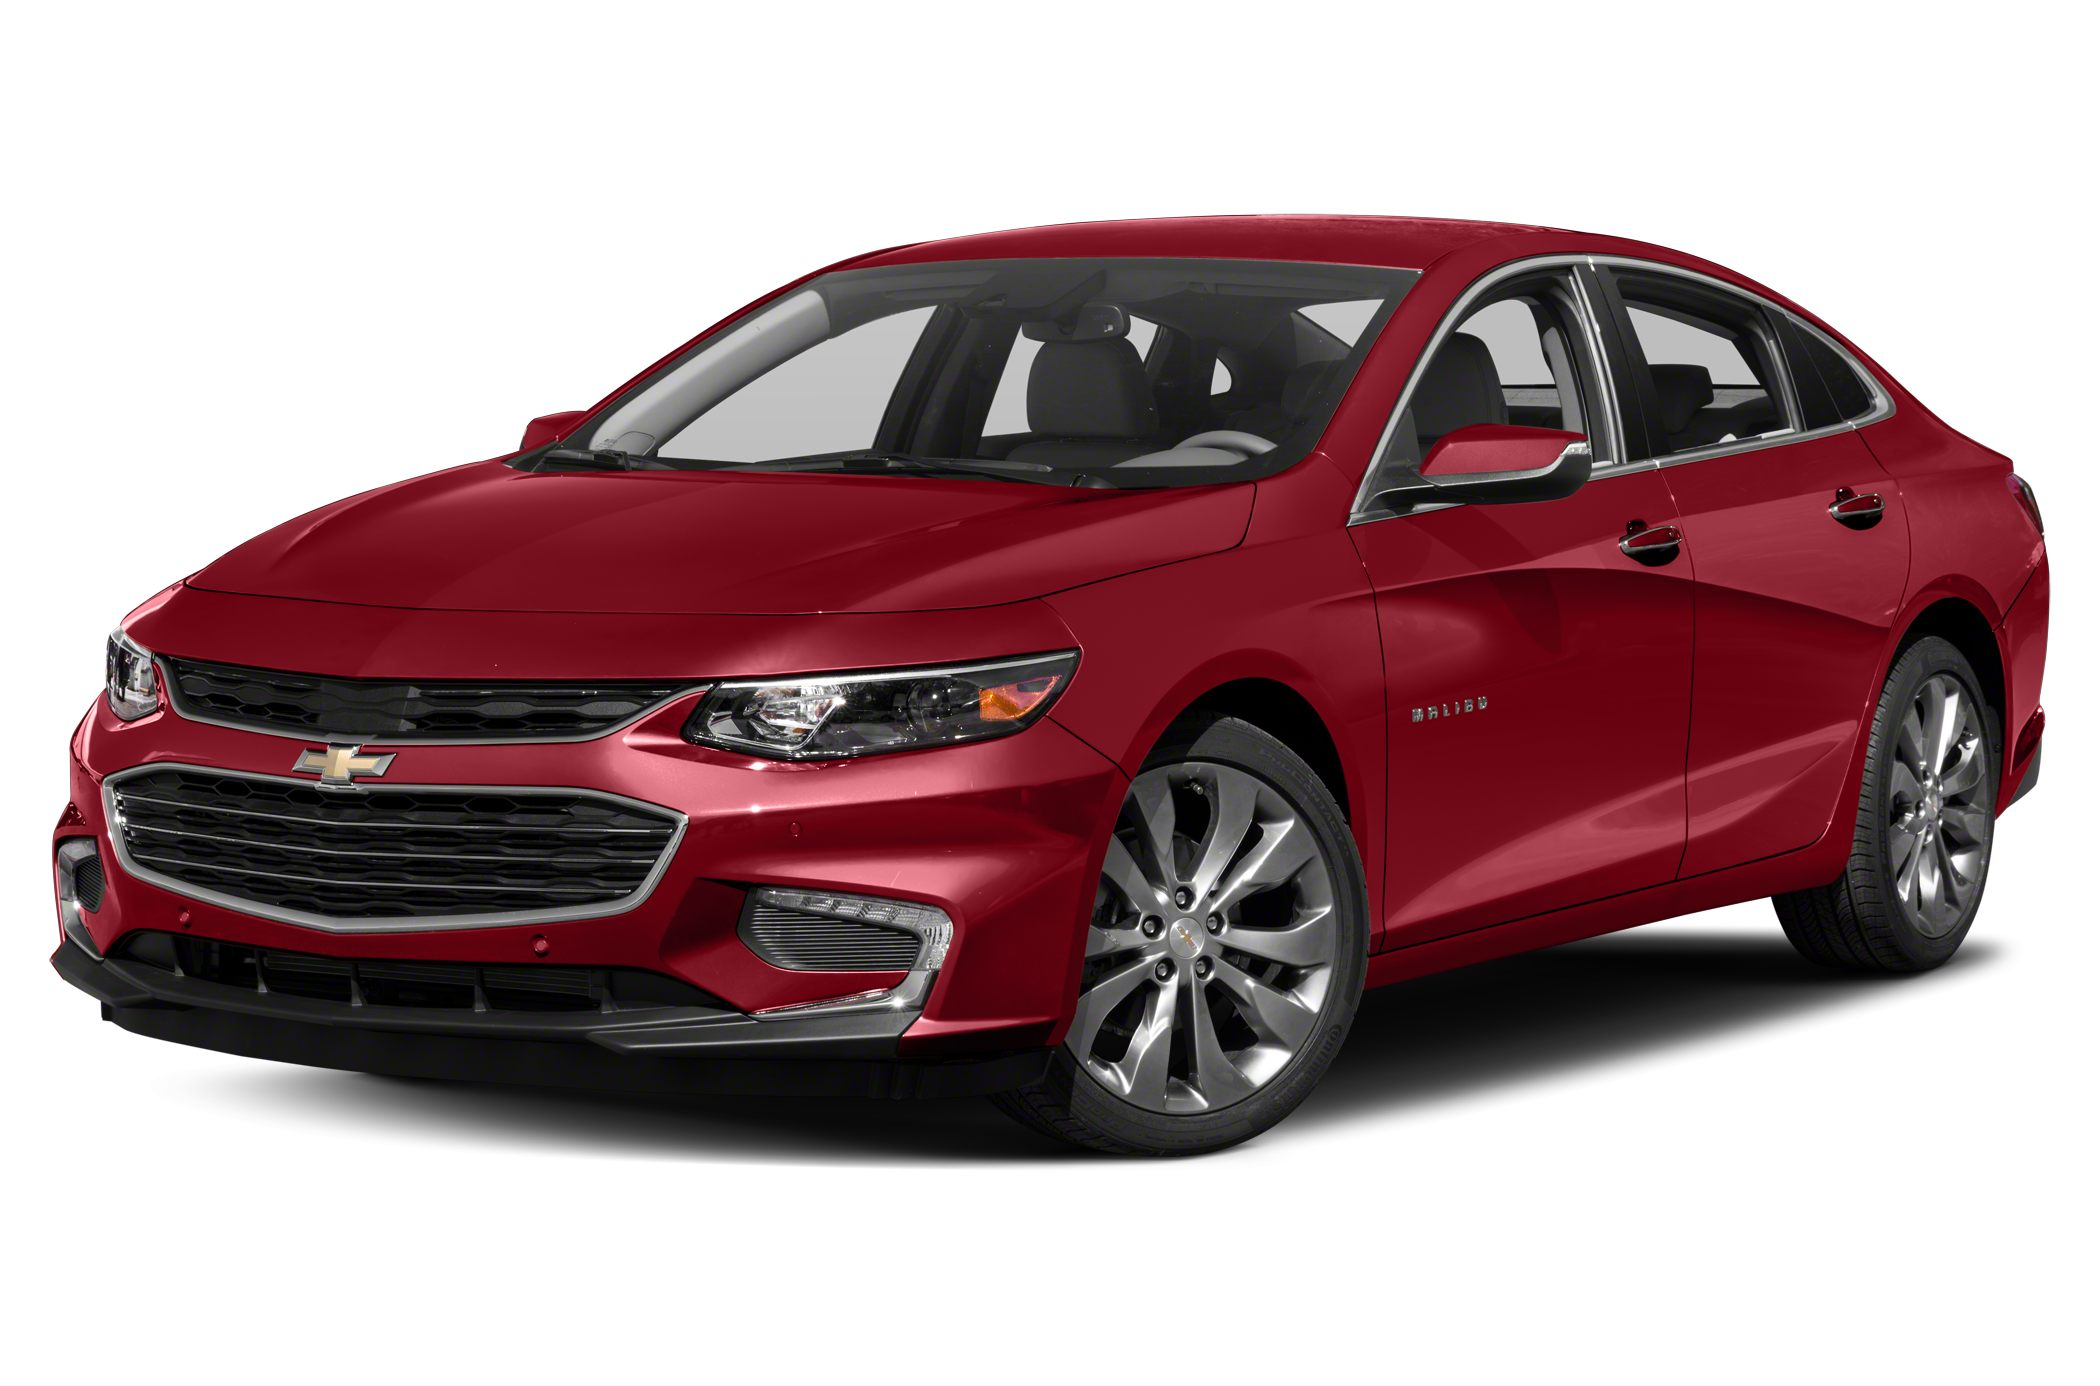 2017 Honda Accord Sedan Configurations >> 2017 Chevrolet Malibu Reviews, Specs and Prices | Cars.com